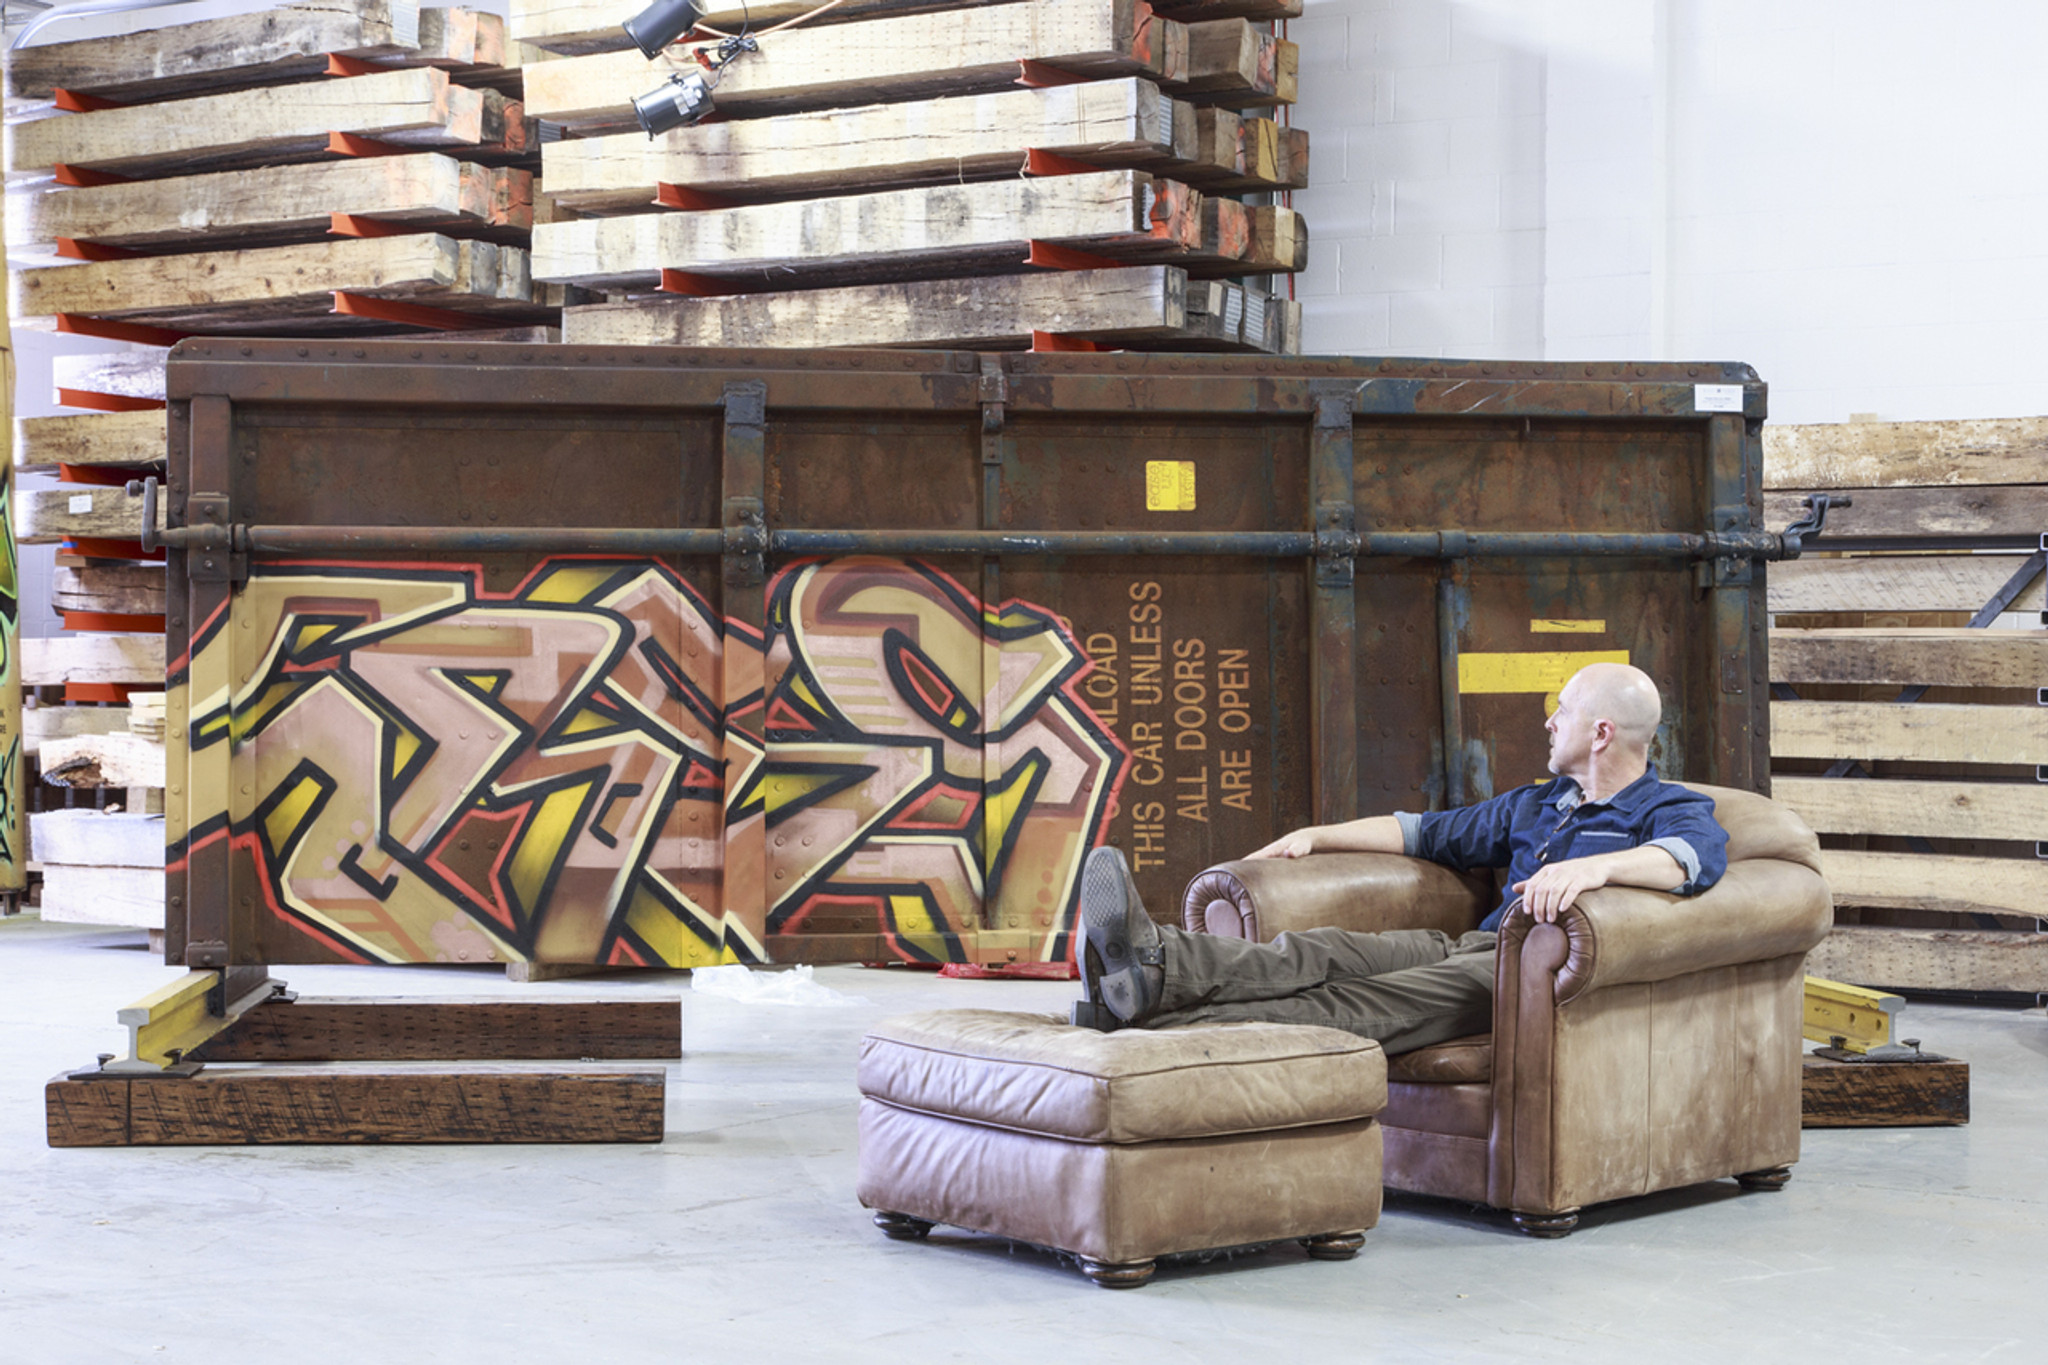 Art aficionado admiring rusted steel urban art with gold, copper and metallic lettering design